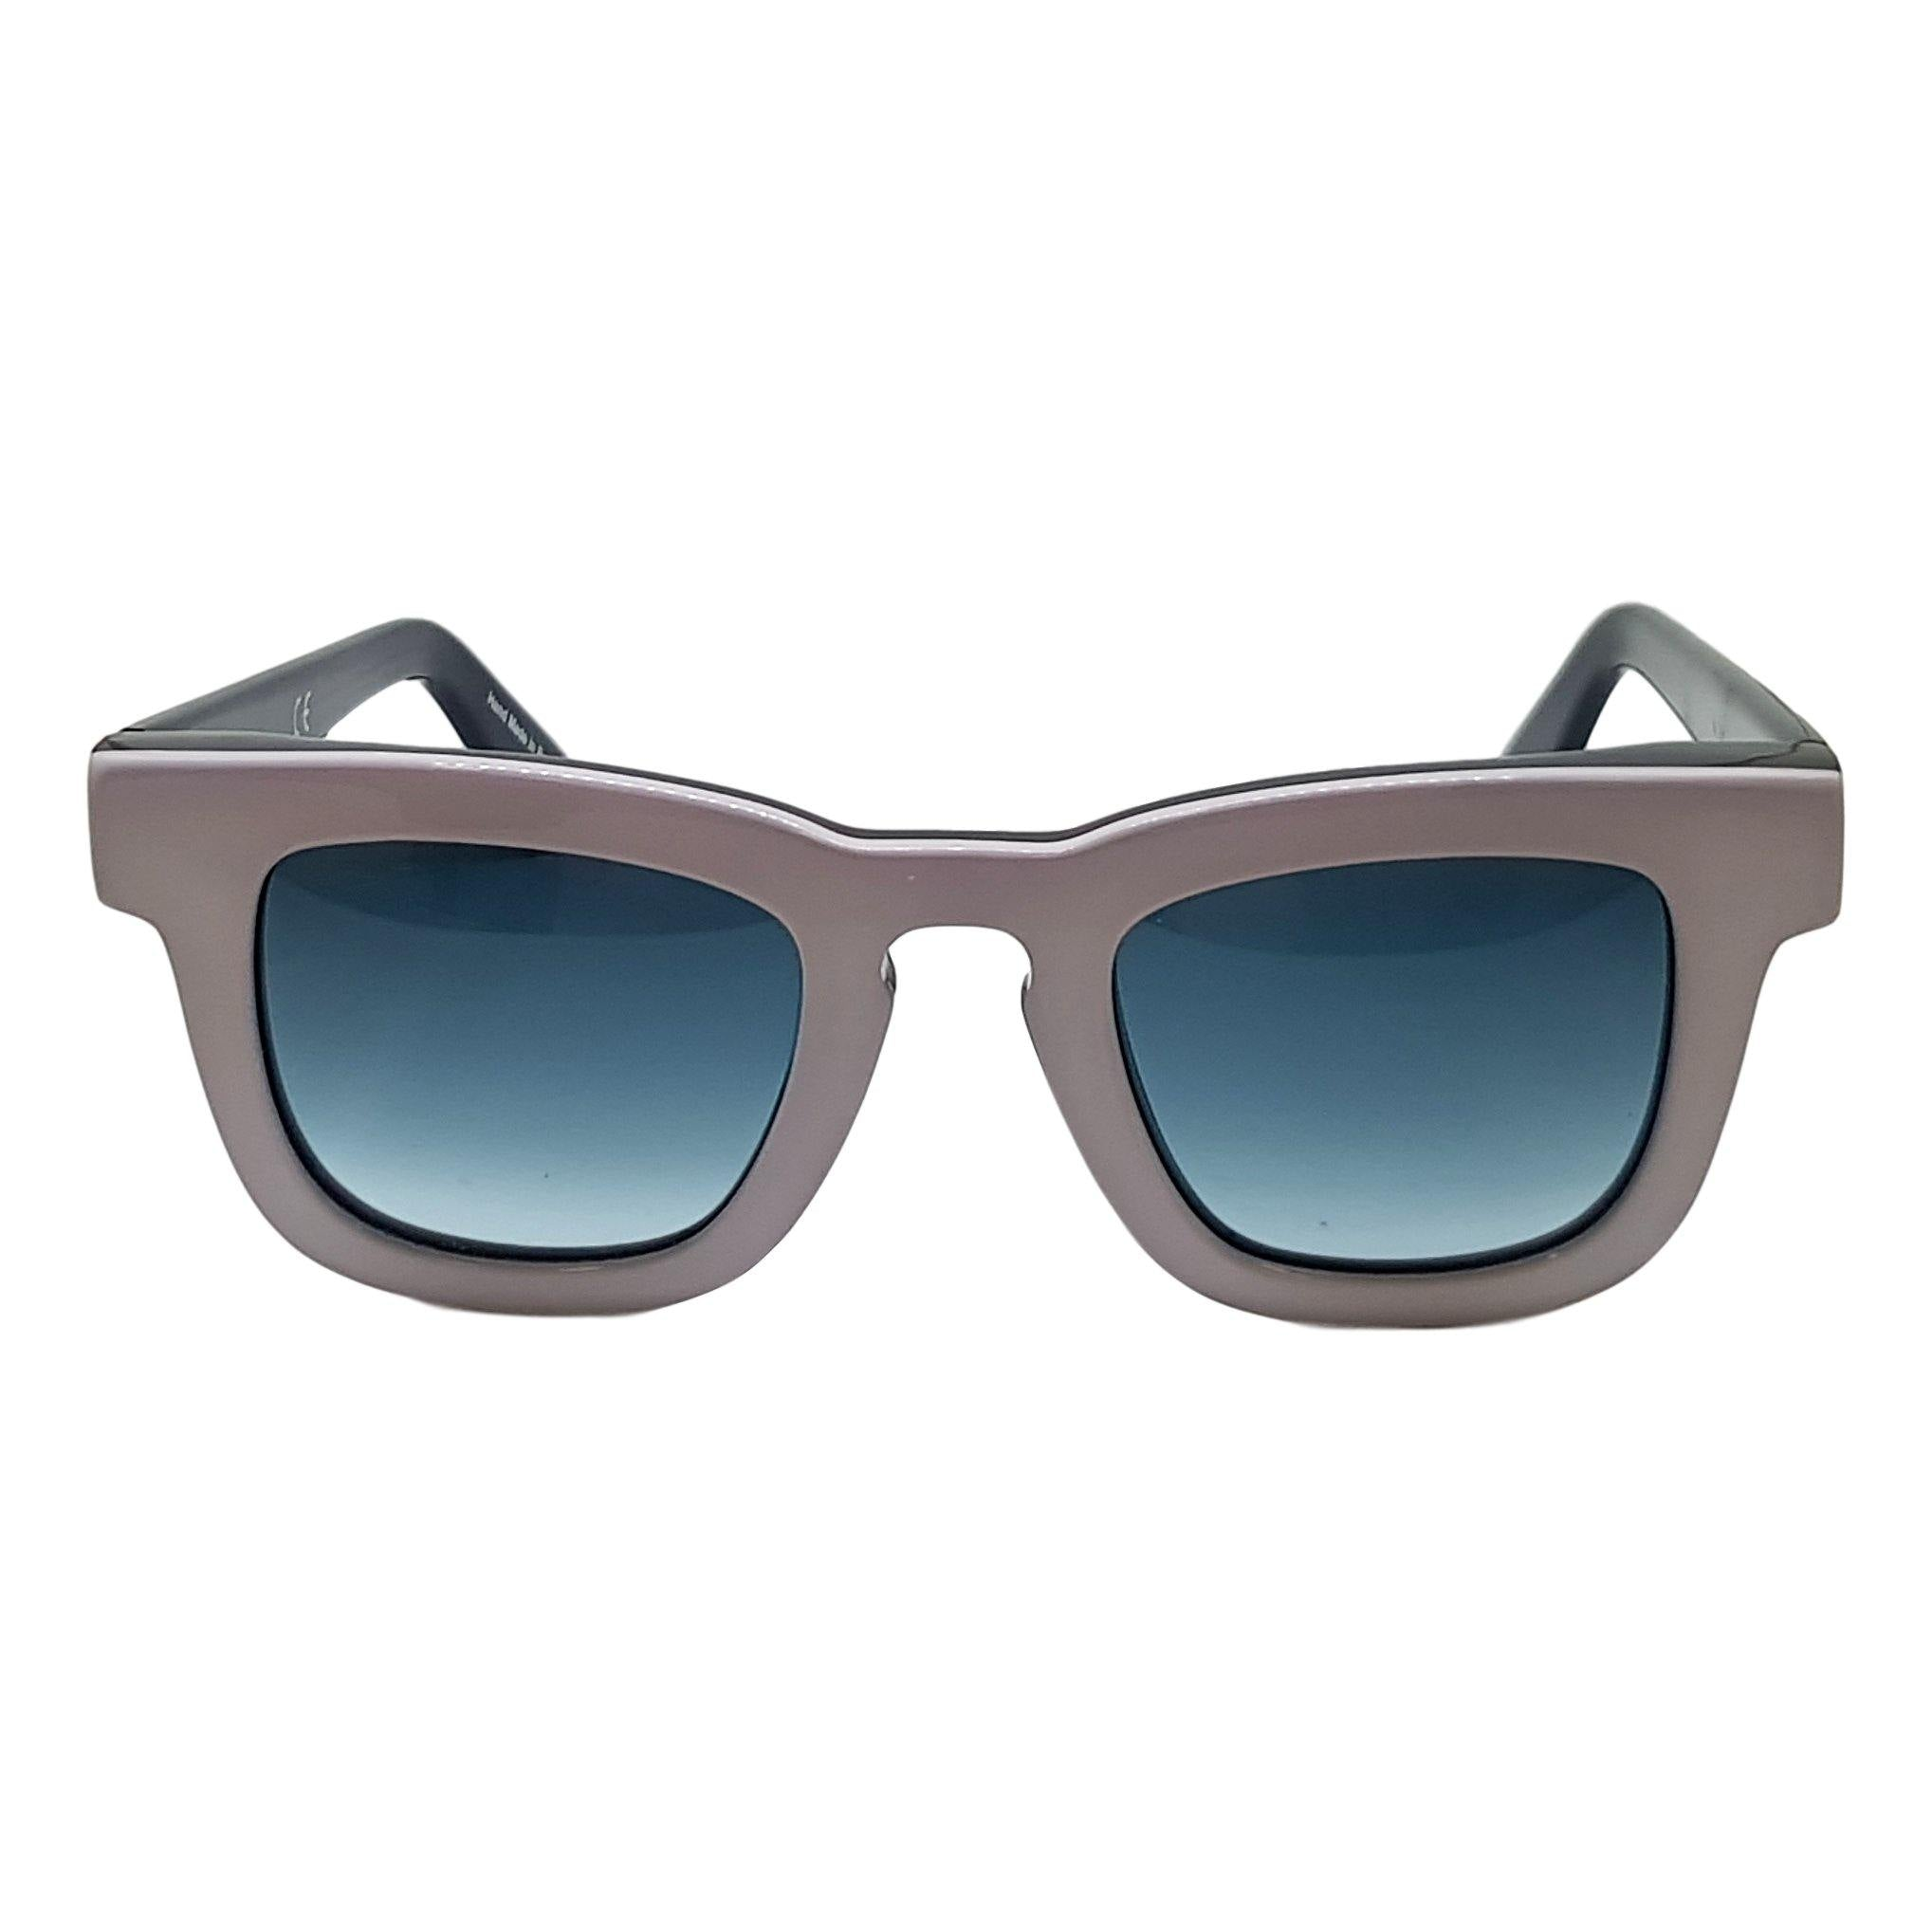 Gustavo Eyewear - G39 - GRAY / BLACK